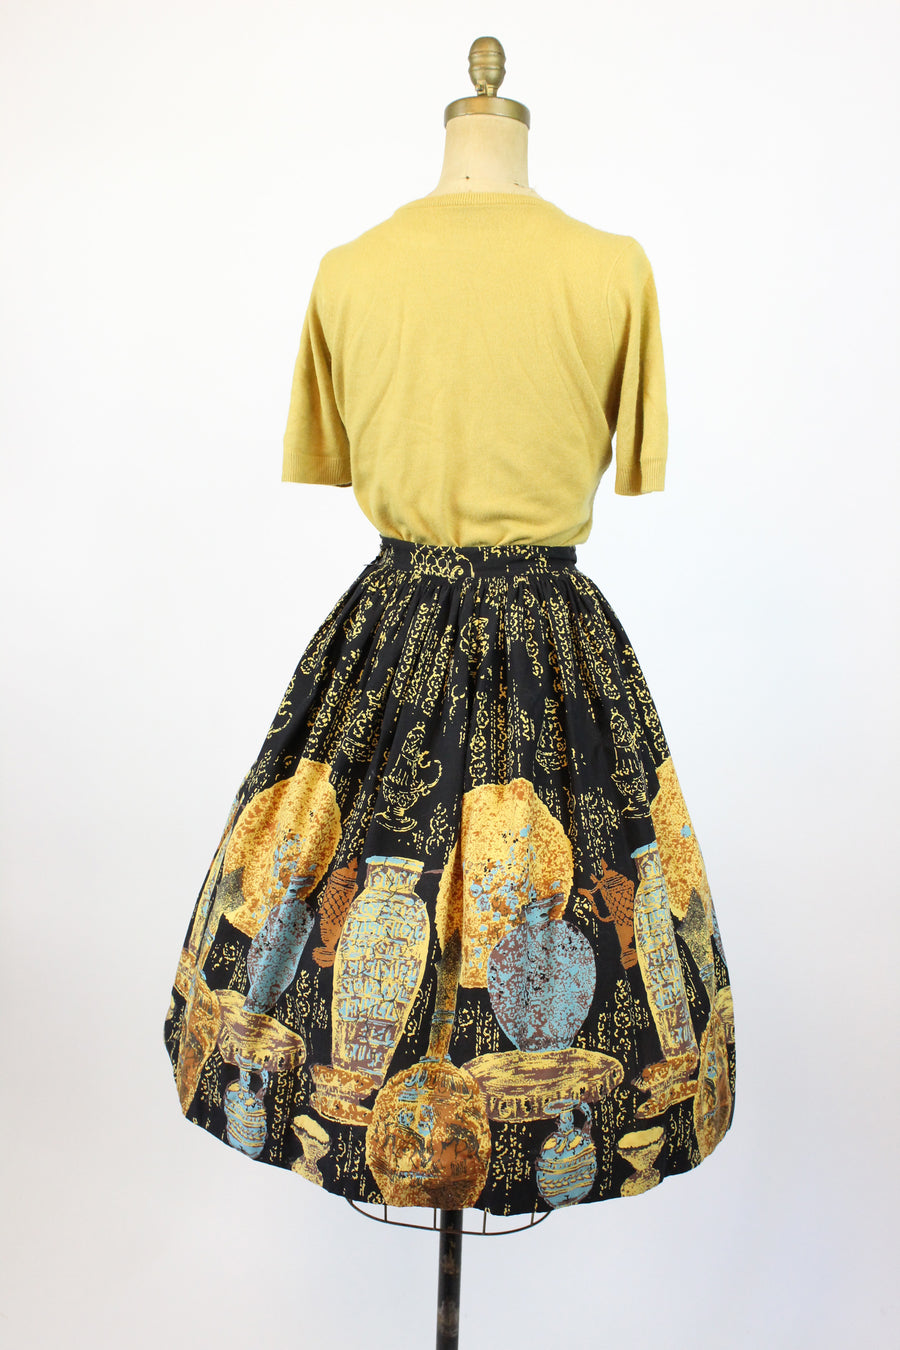 1950s novelty print skirt urns and vases xs | new in